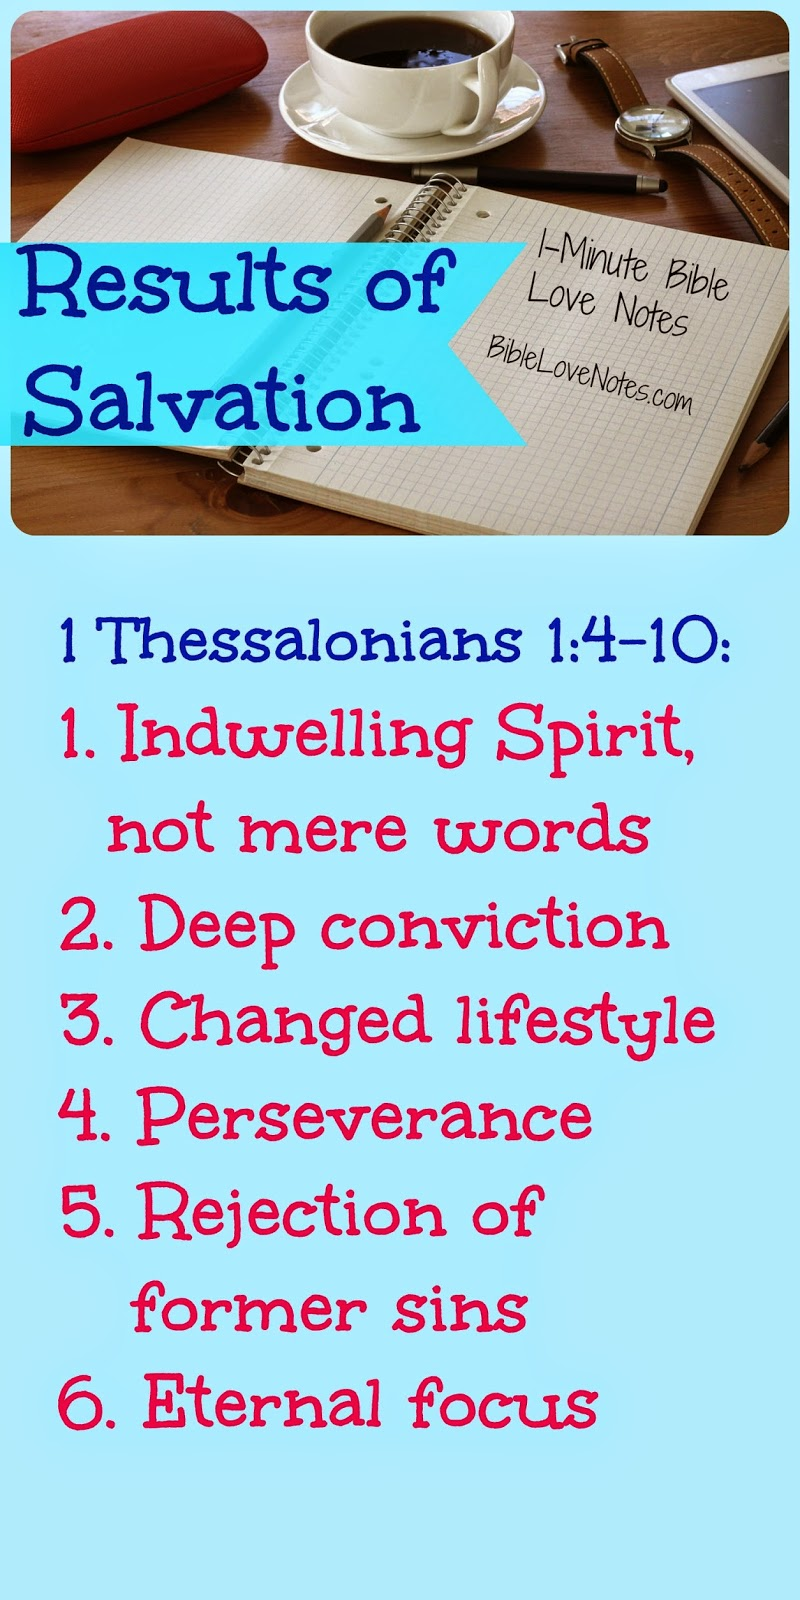 1 Thessalonians 1:4-10, conviction of sin, indwelling spirit, changes lifestyle, perseverance, proofs of salvation